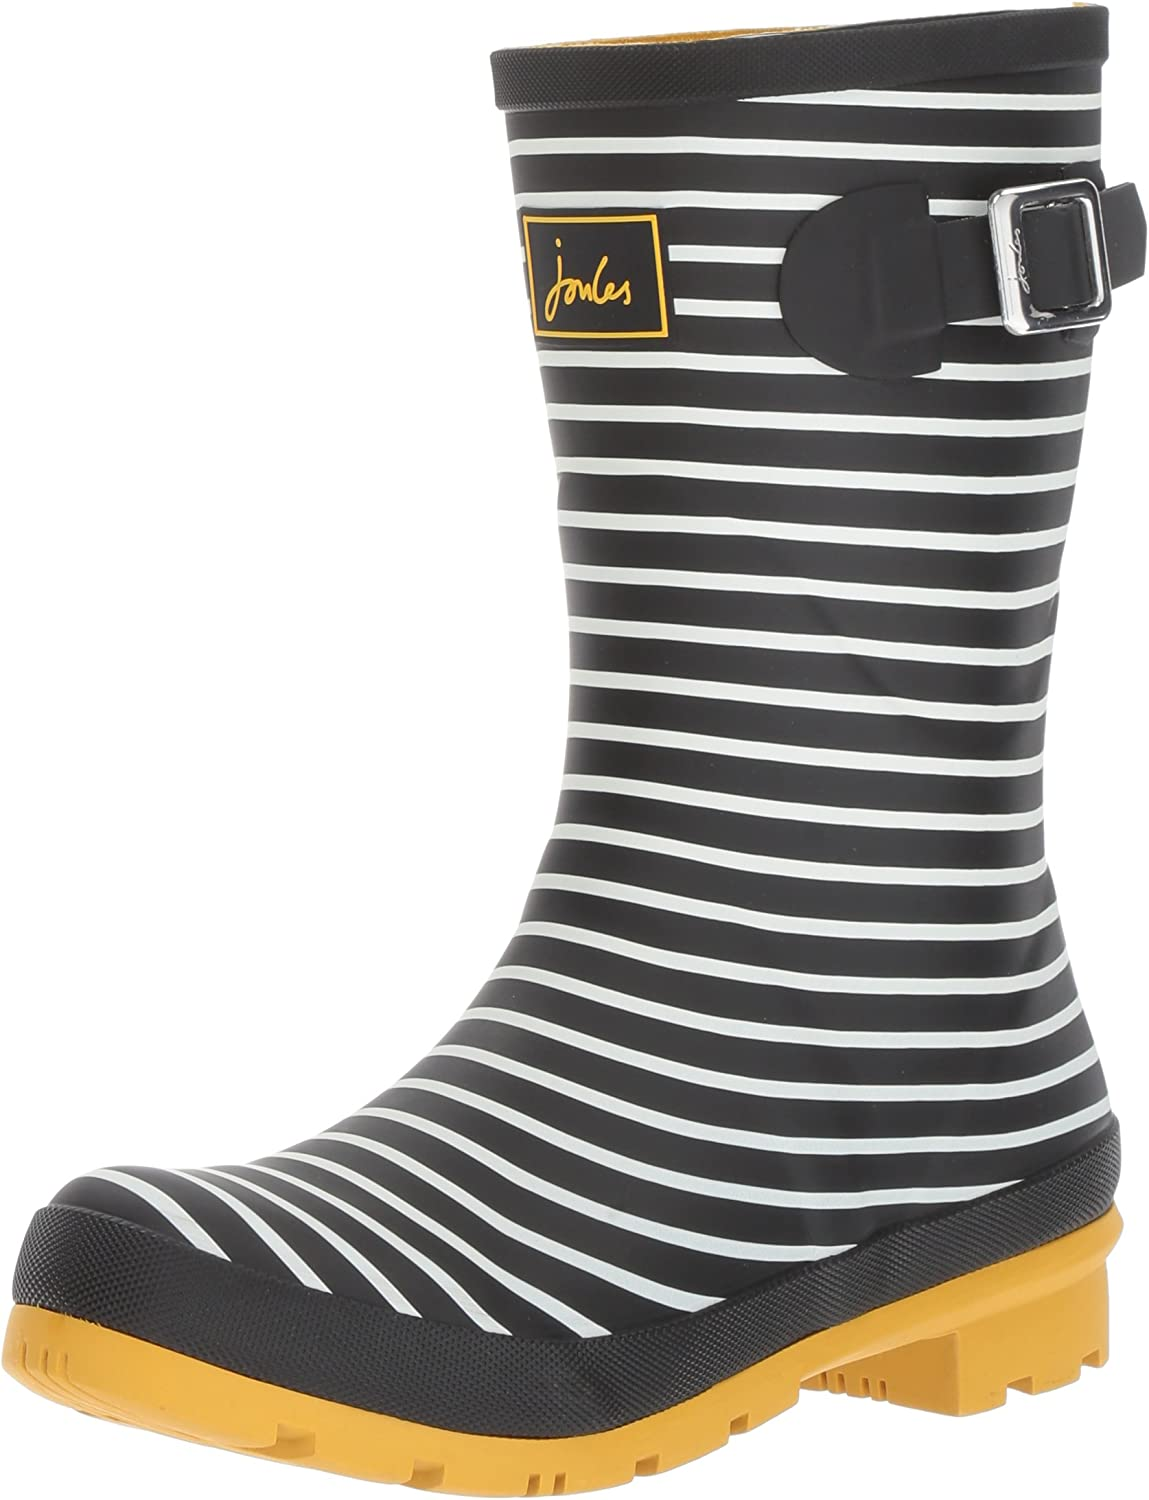 Joules Womens Molly Welly Rain Boot